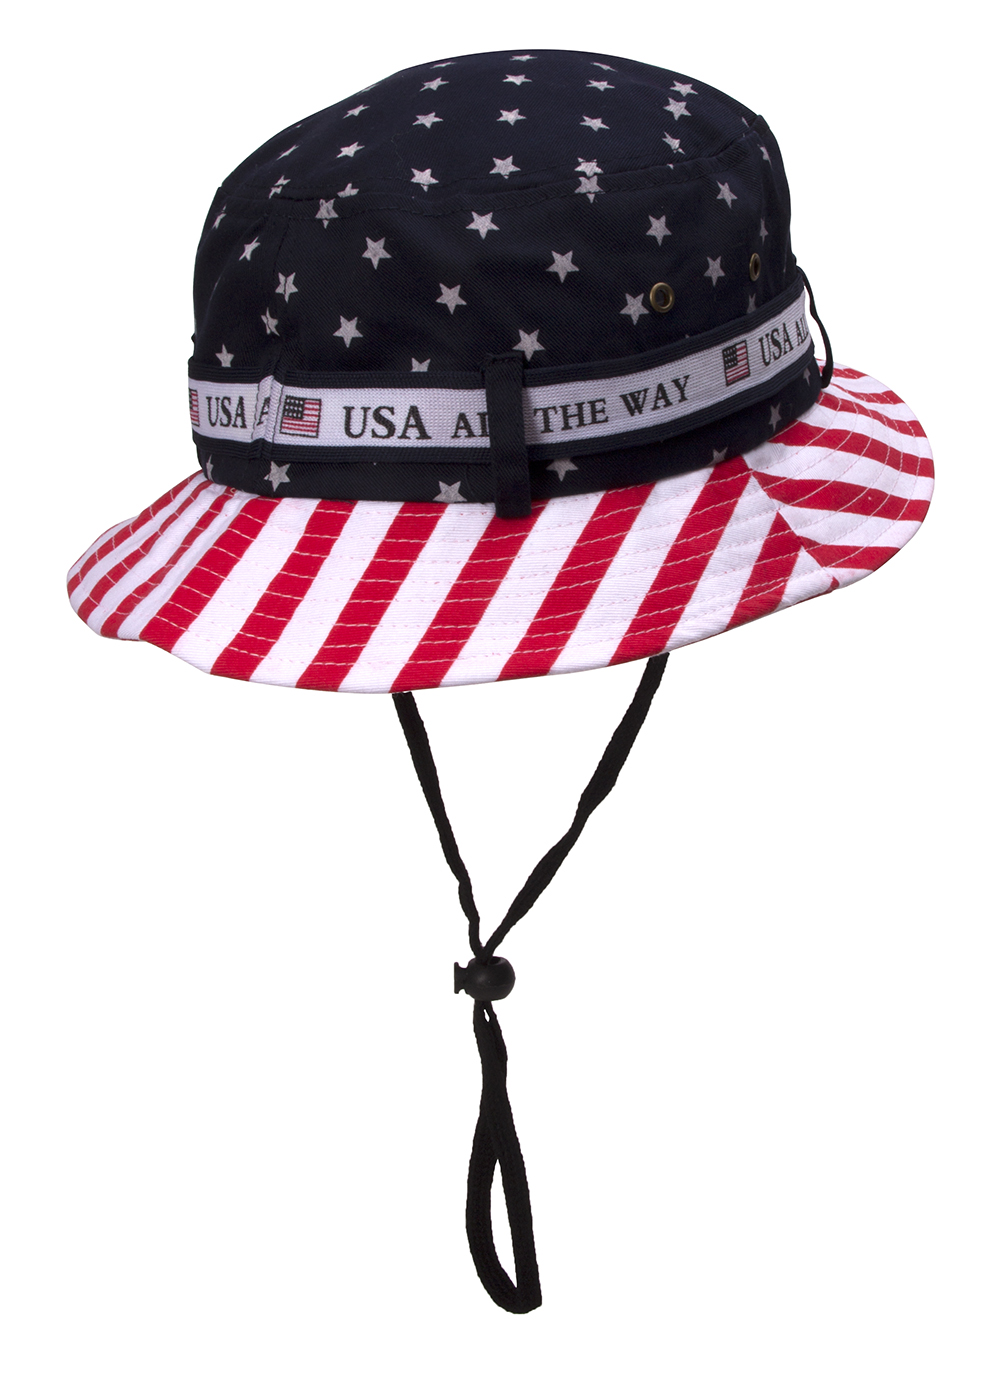 Cotton Twill USA Flag Bucket Hat USA All The Way Boonie - Walmart.com b91b498739f